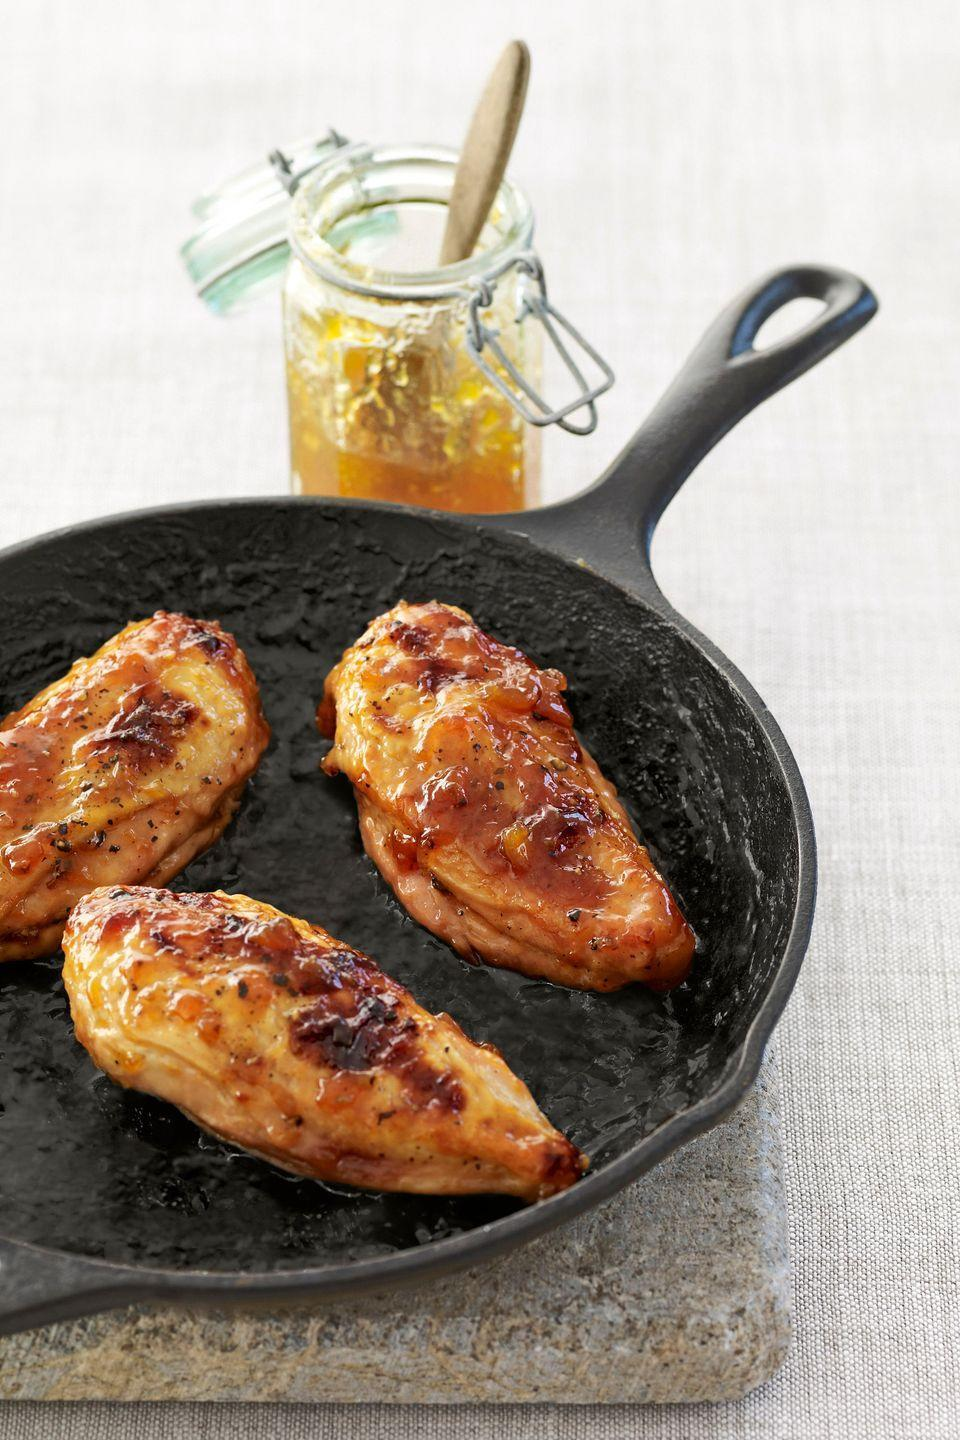 """<p>This sweet-and-savory glaze adds new flavor to a classic baked chicken.</p><p><strong><a href=""""https://www.countryliving.com/food-drinks/recipes/a2797/floras-jam-glazed-chicken-recipe/"""" rel=""""nofollow noopener"""" target=""""_blank"""" data-ylk=""""slk:Get the recipe"""" class=""""link rapid-noclick-resp"""">Get the recipe</a>.</strong></p>"""